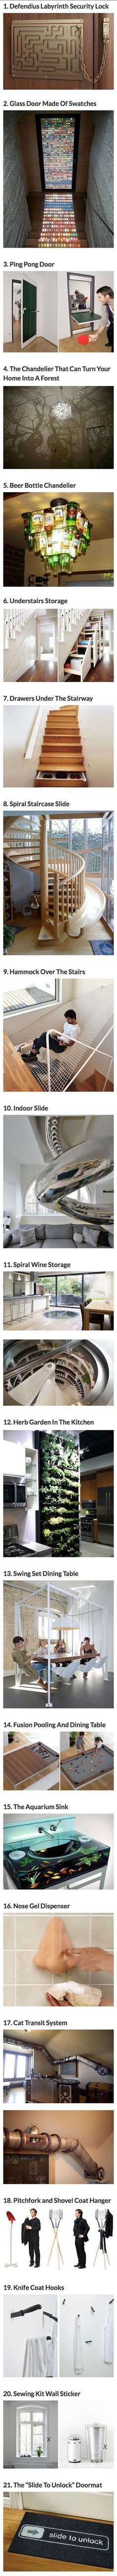 Some of these ideas would be AMAZING fun depending on my future home style. Especially the shovel and pitchfork!!: